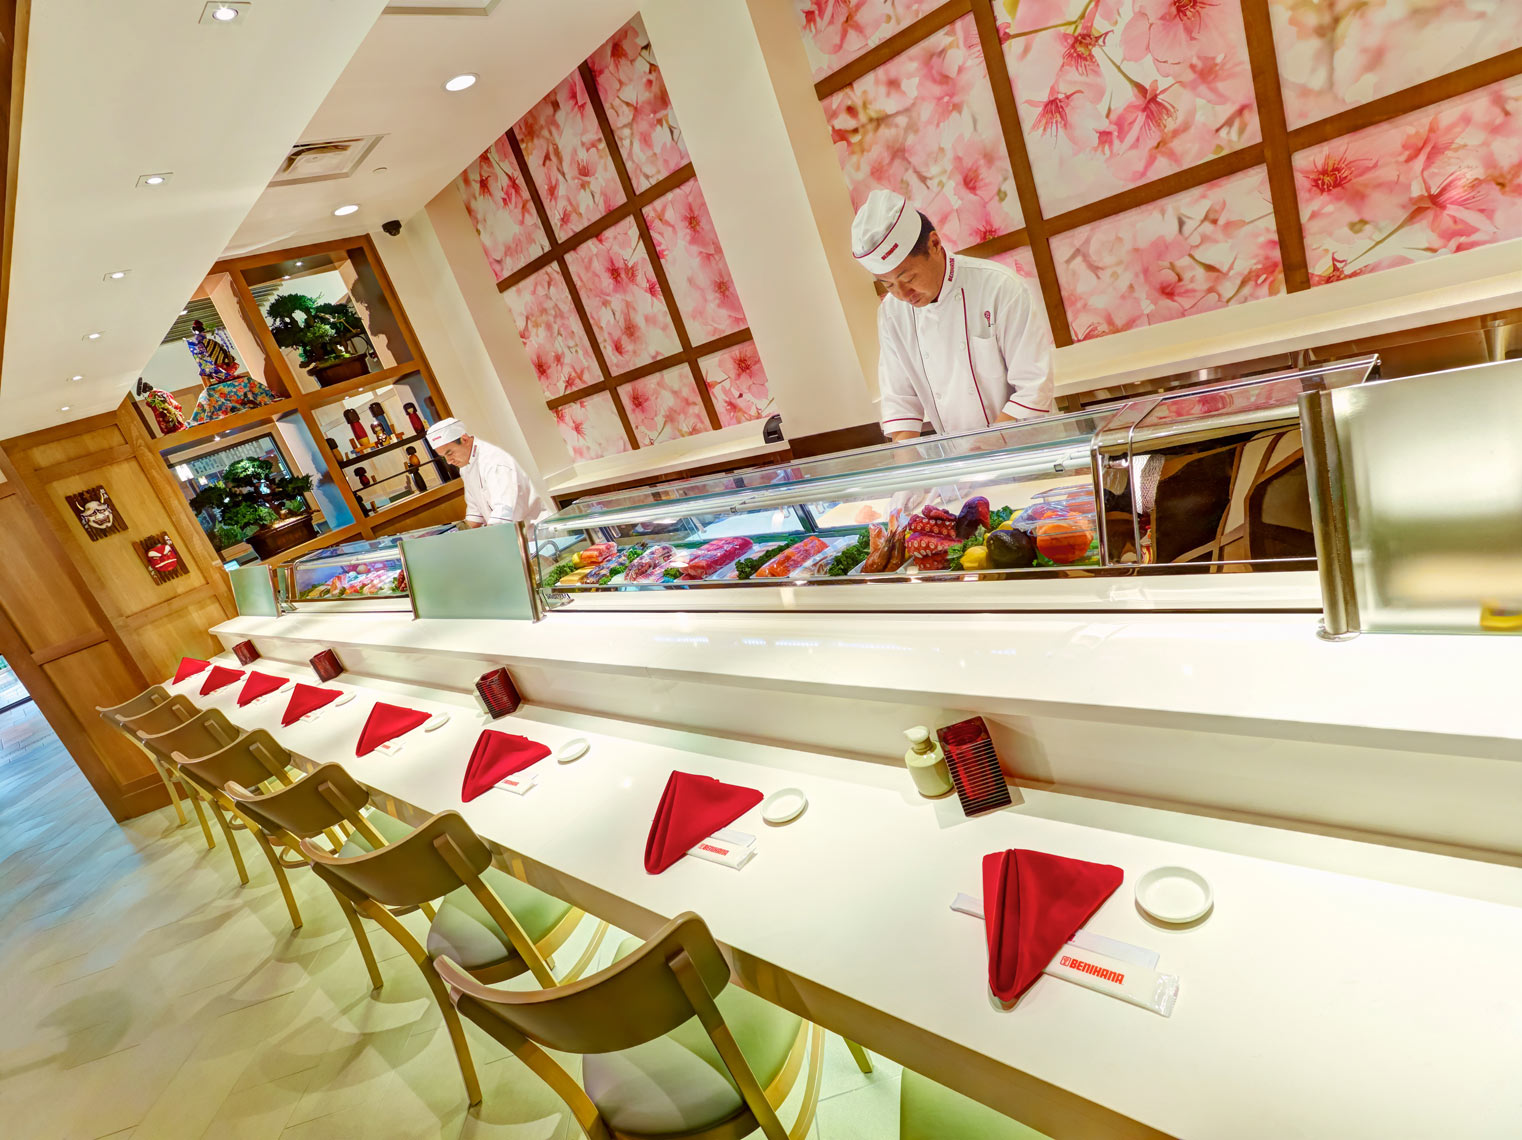 Benihana sushi bar/cooks assemling/counter/architectural photo